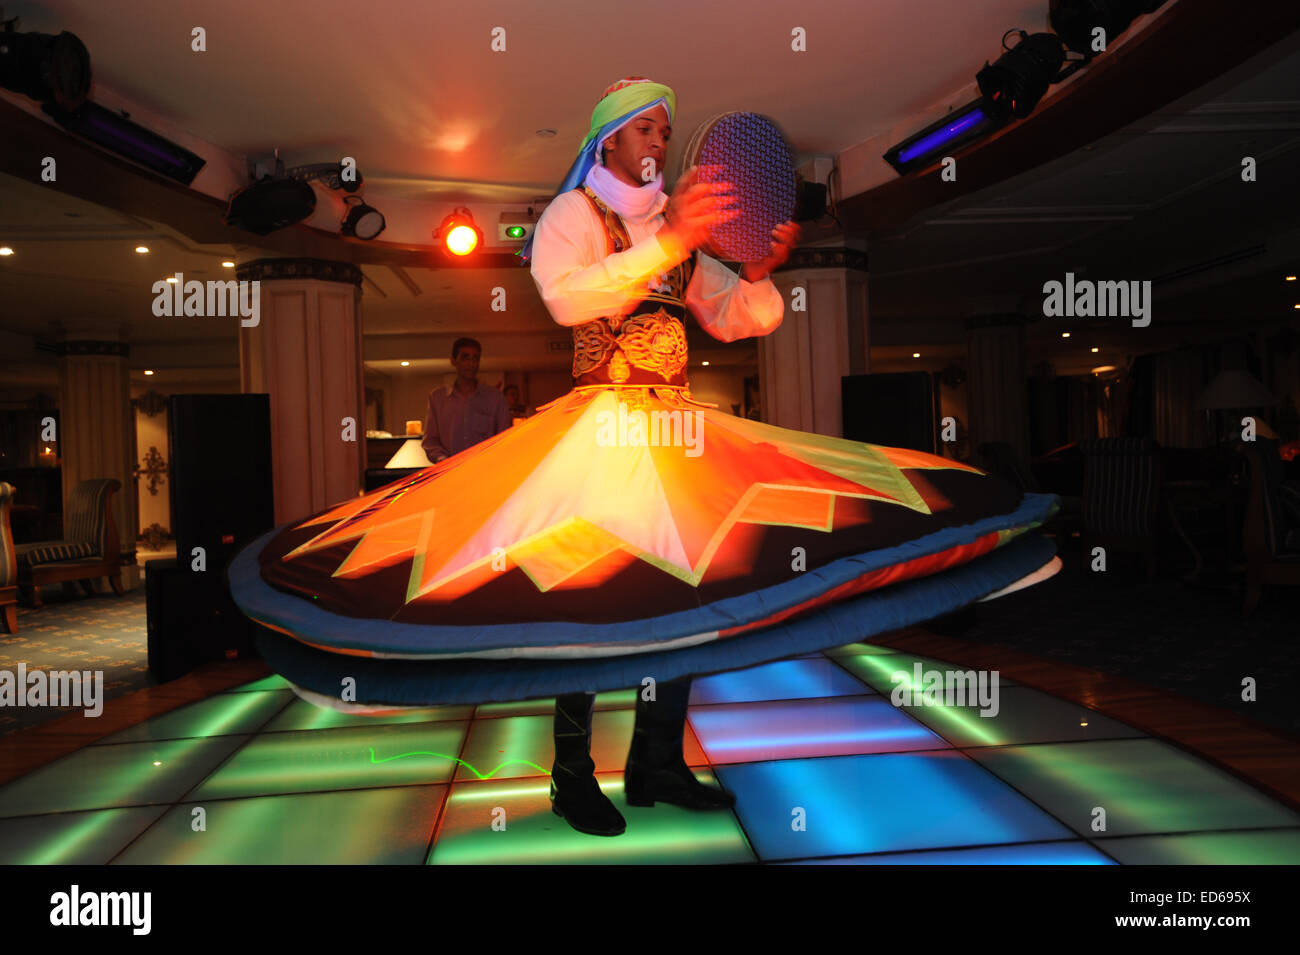 Egypt show a whirling dervish, Dance Traditional local costume. - Stock Image